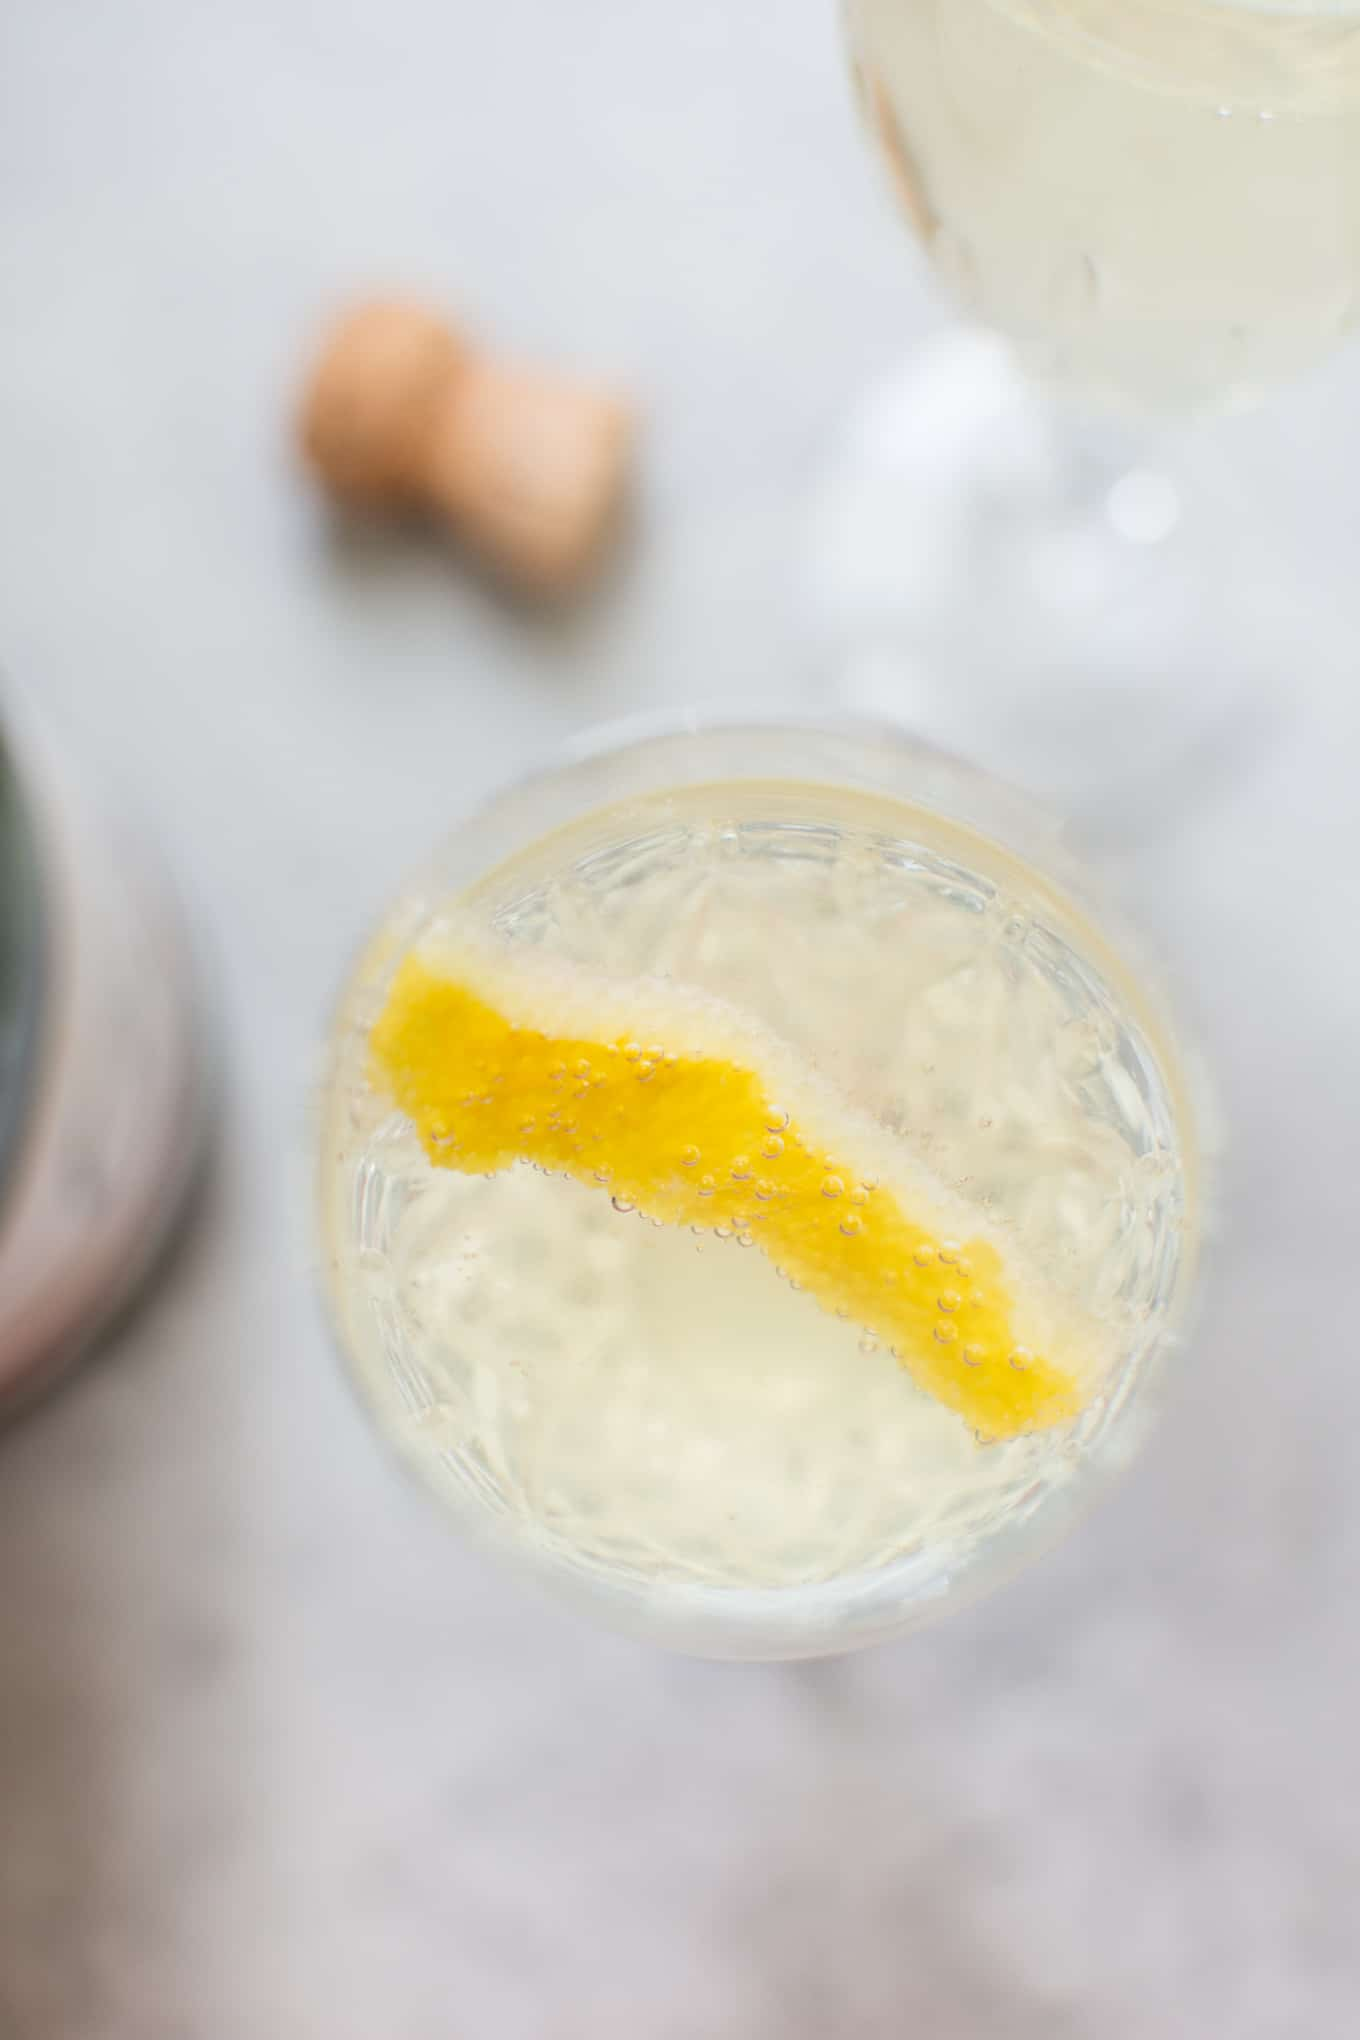 This lemon champagne cocktail is lively, refreshing, and perfect for summer. Lemon simple syrup adds just the right amount of sweetness and lemon flavor to this bubbly drink.